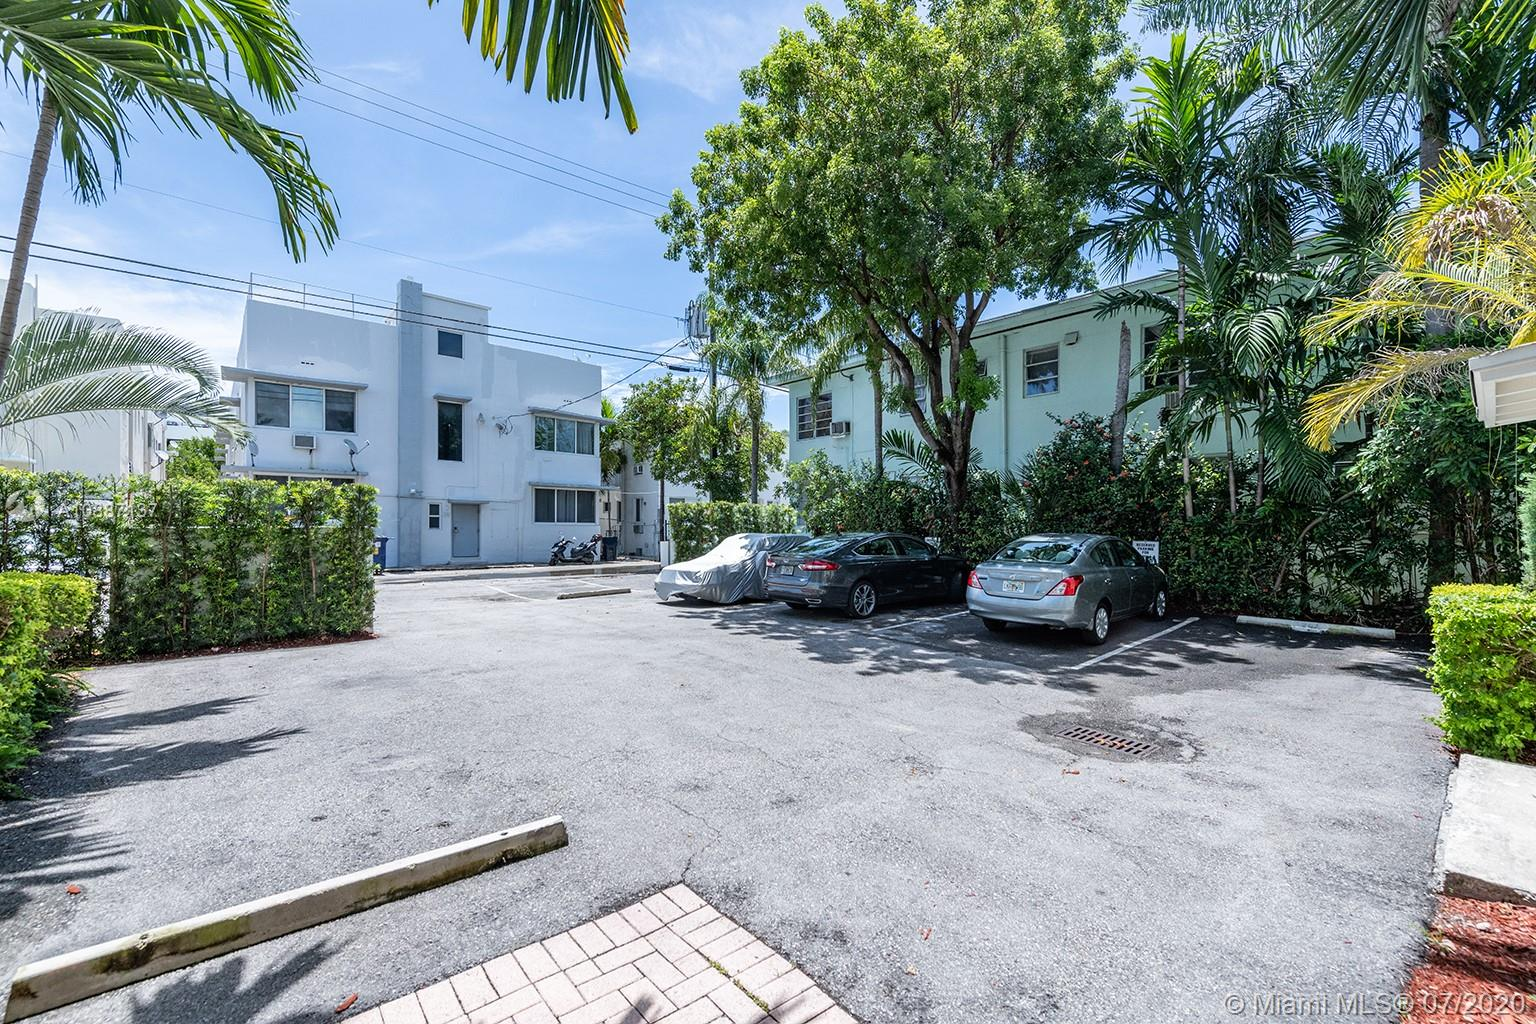 1117  Euclid Ave #101 For Sale A10887137, FL